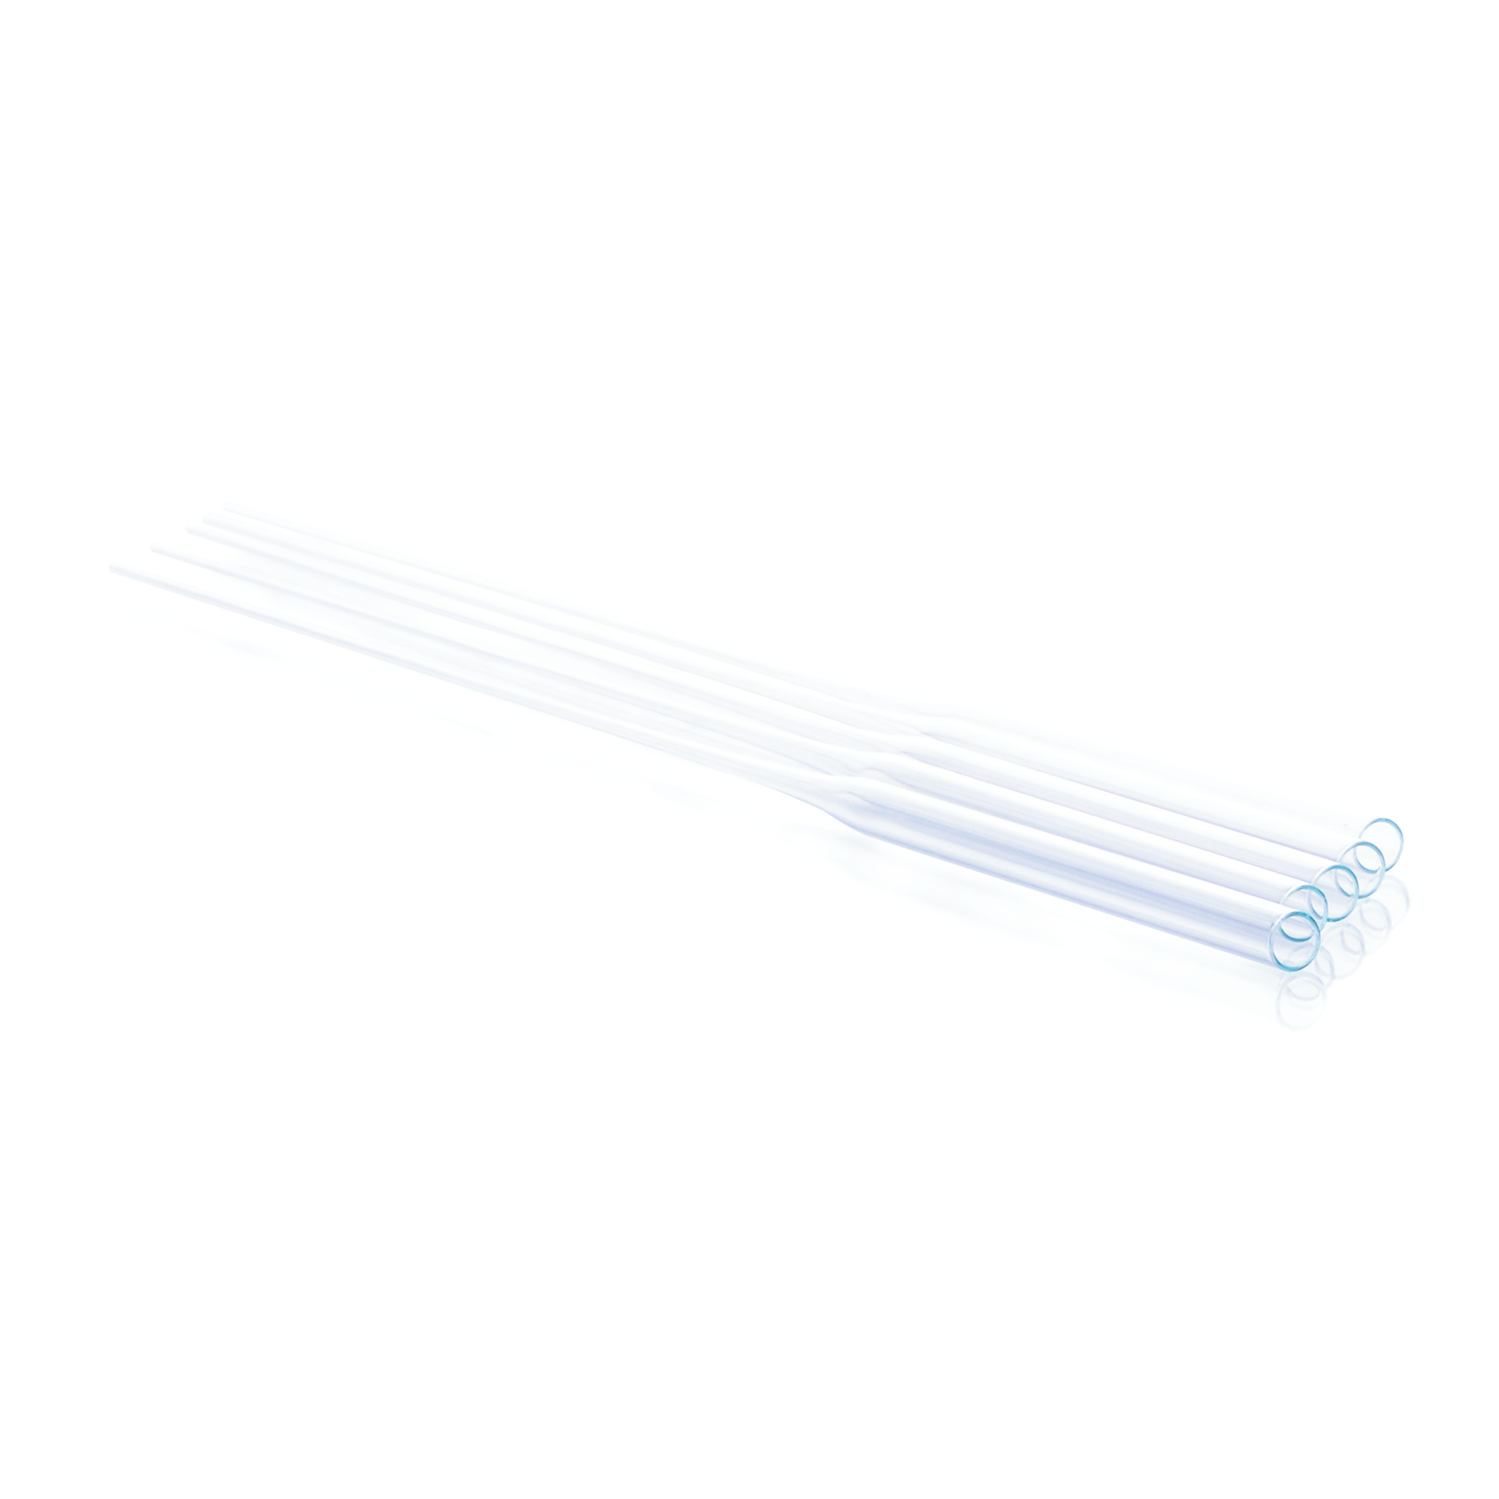 KIMBLE® KONTES® Extended Tip Pipet, 9 inch